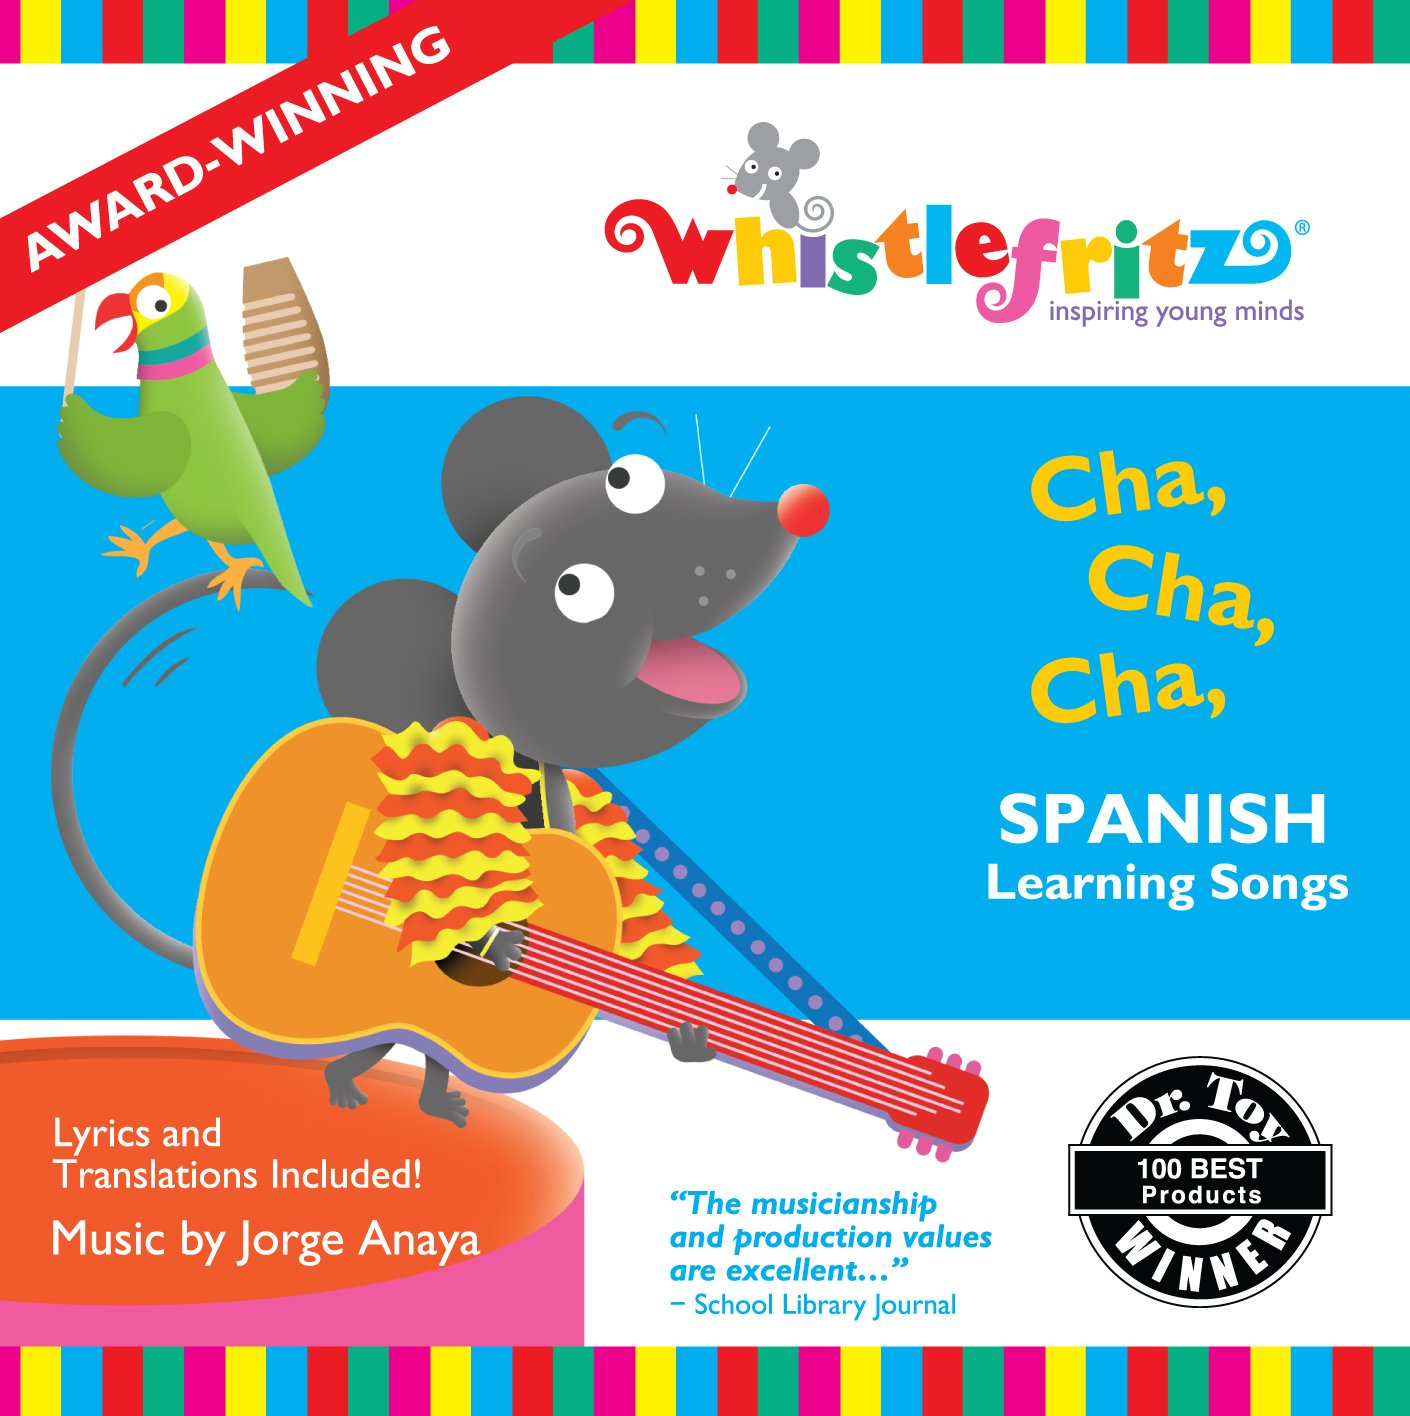 Jorge Anaya - Cha, Cha, Cha -- Spanish Learning Songs Canciones Infantiles  - Amazon.com Music